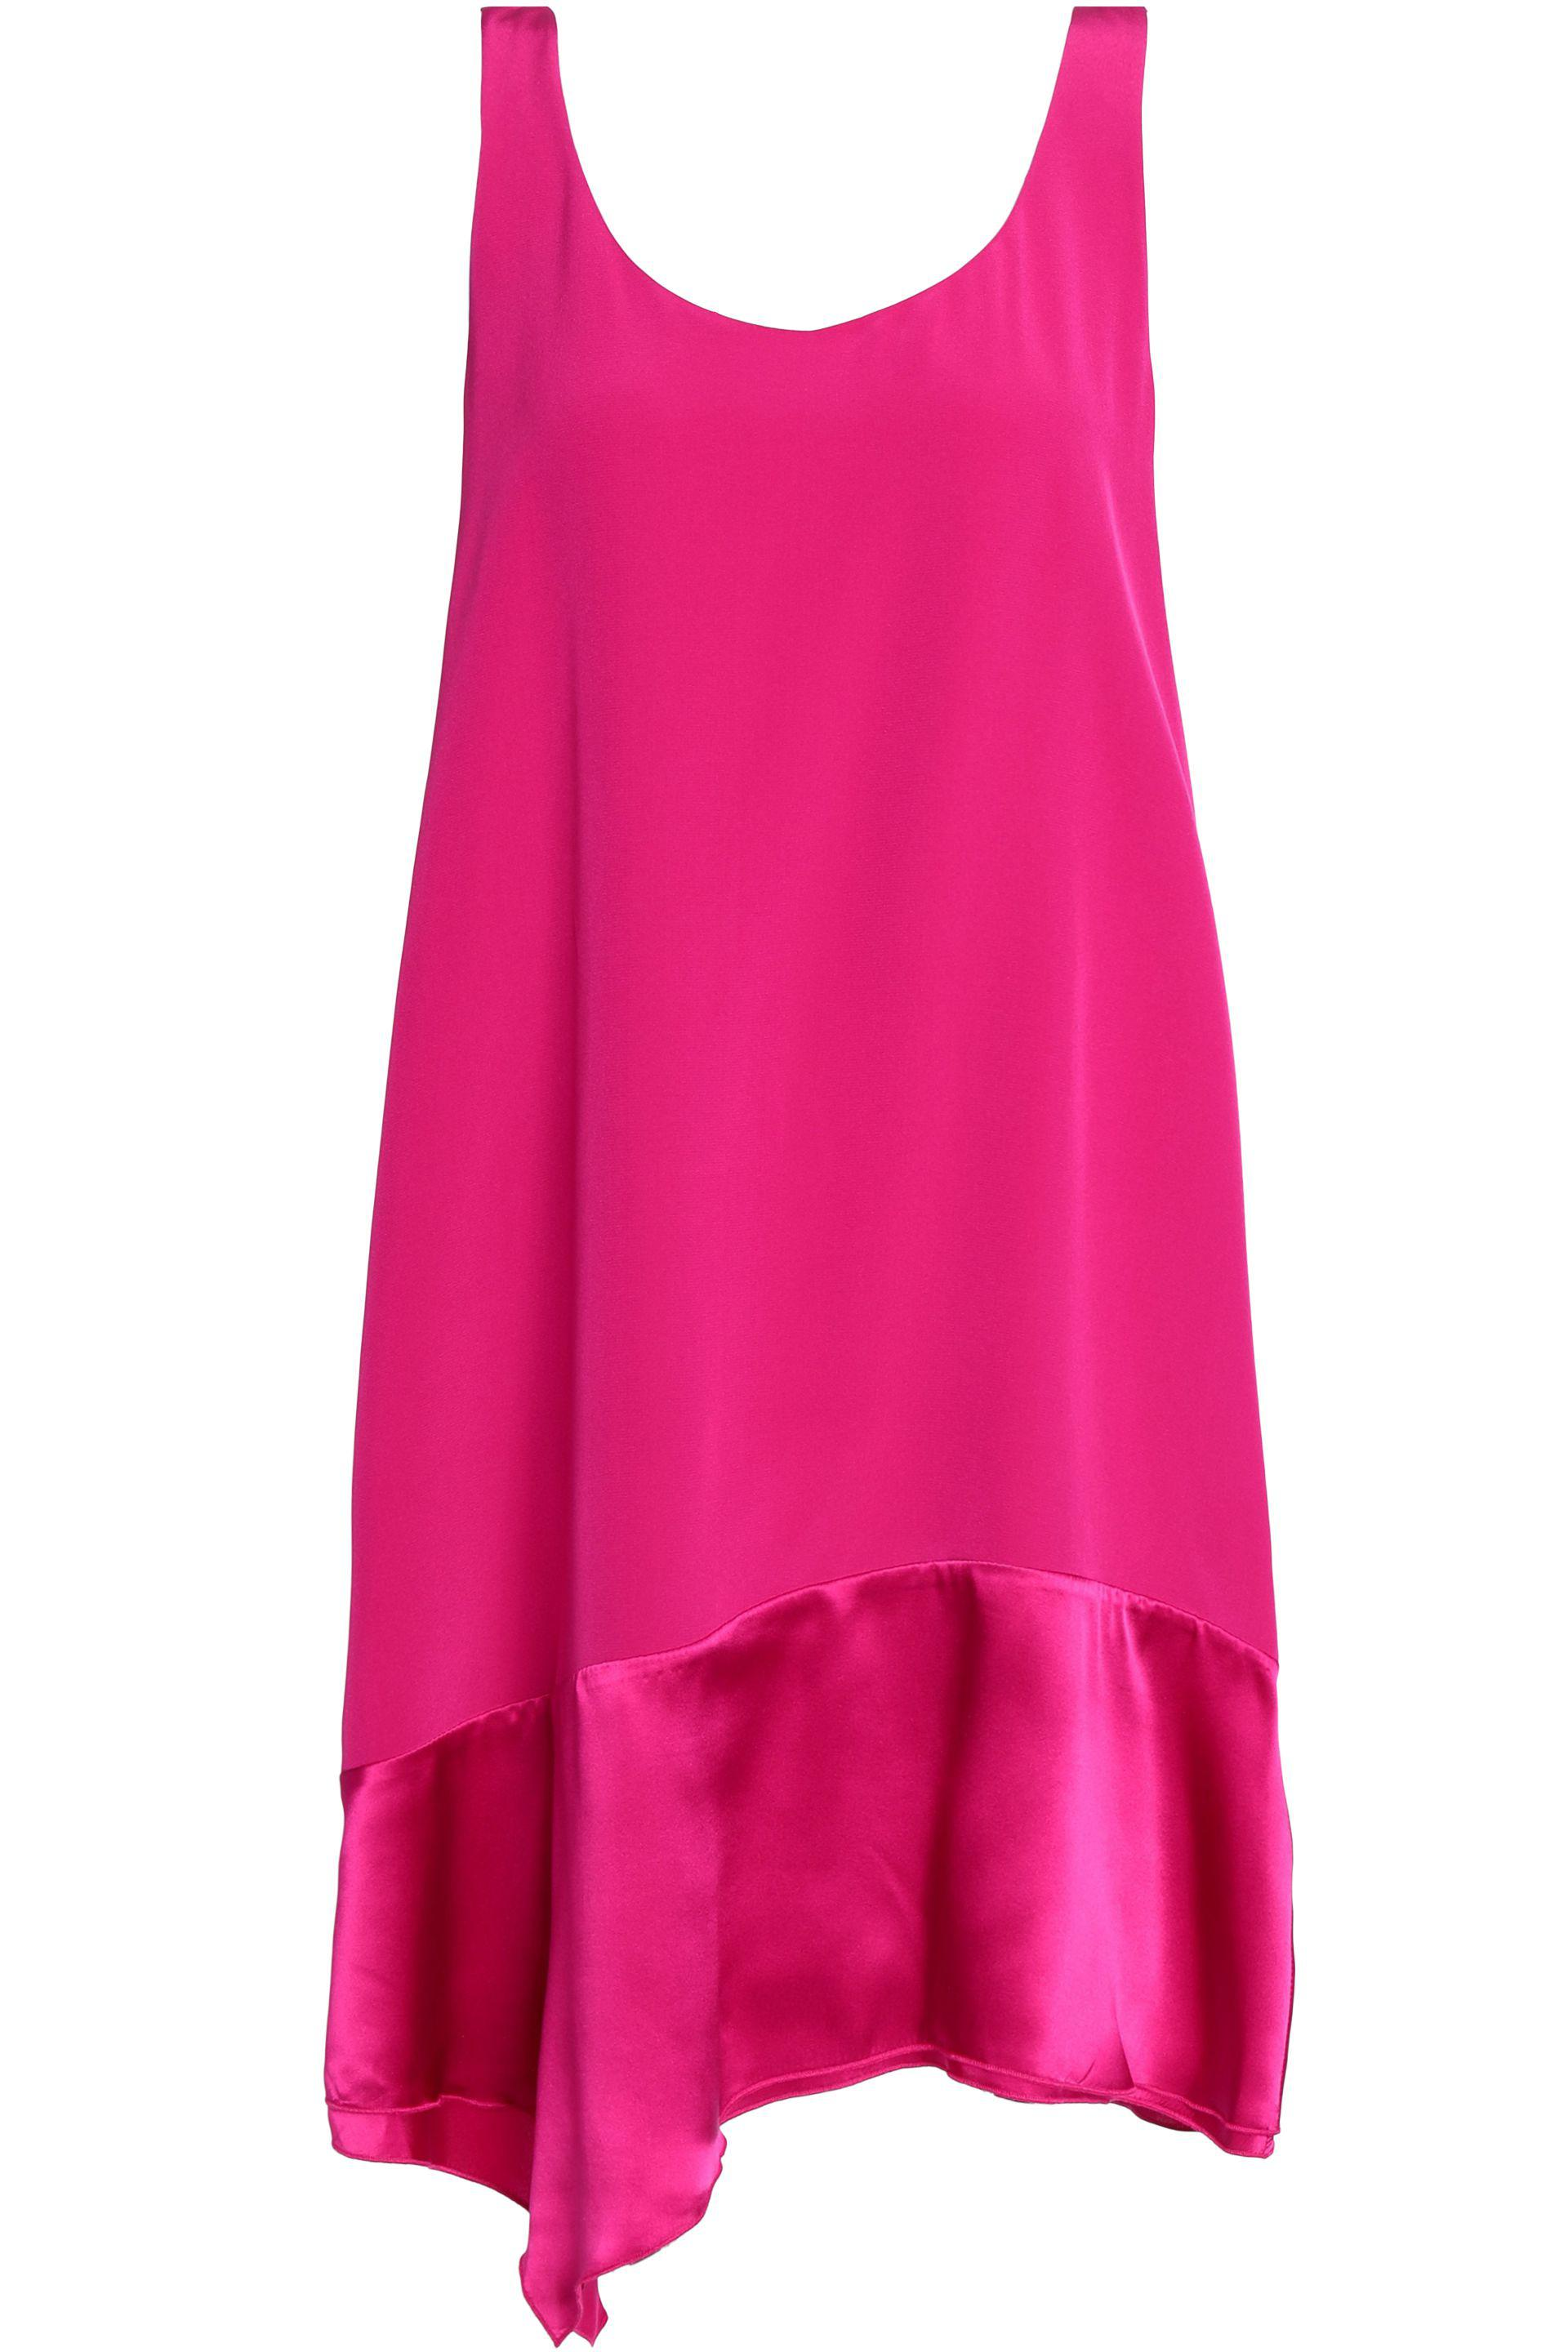 Online Cheap Authentic For Sale Cheap Online 3.1 Phillip Lim Woman Satin-trimmed Silk-crepe Dress Fuchsia Size 2 3.1 Phillip Lim Outlet In China wveOrRH